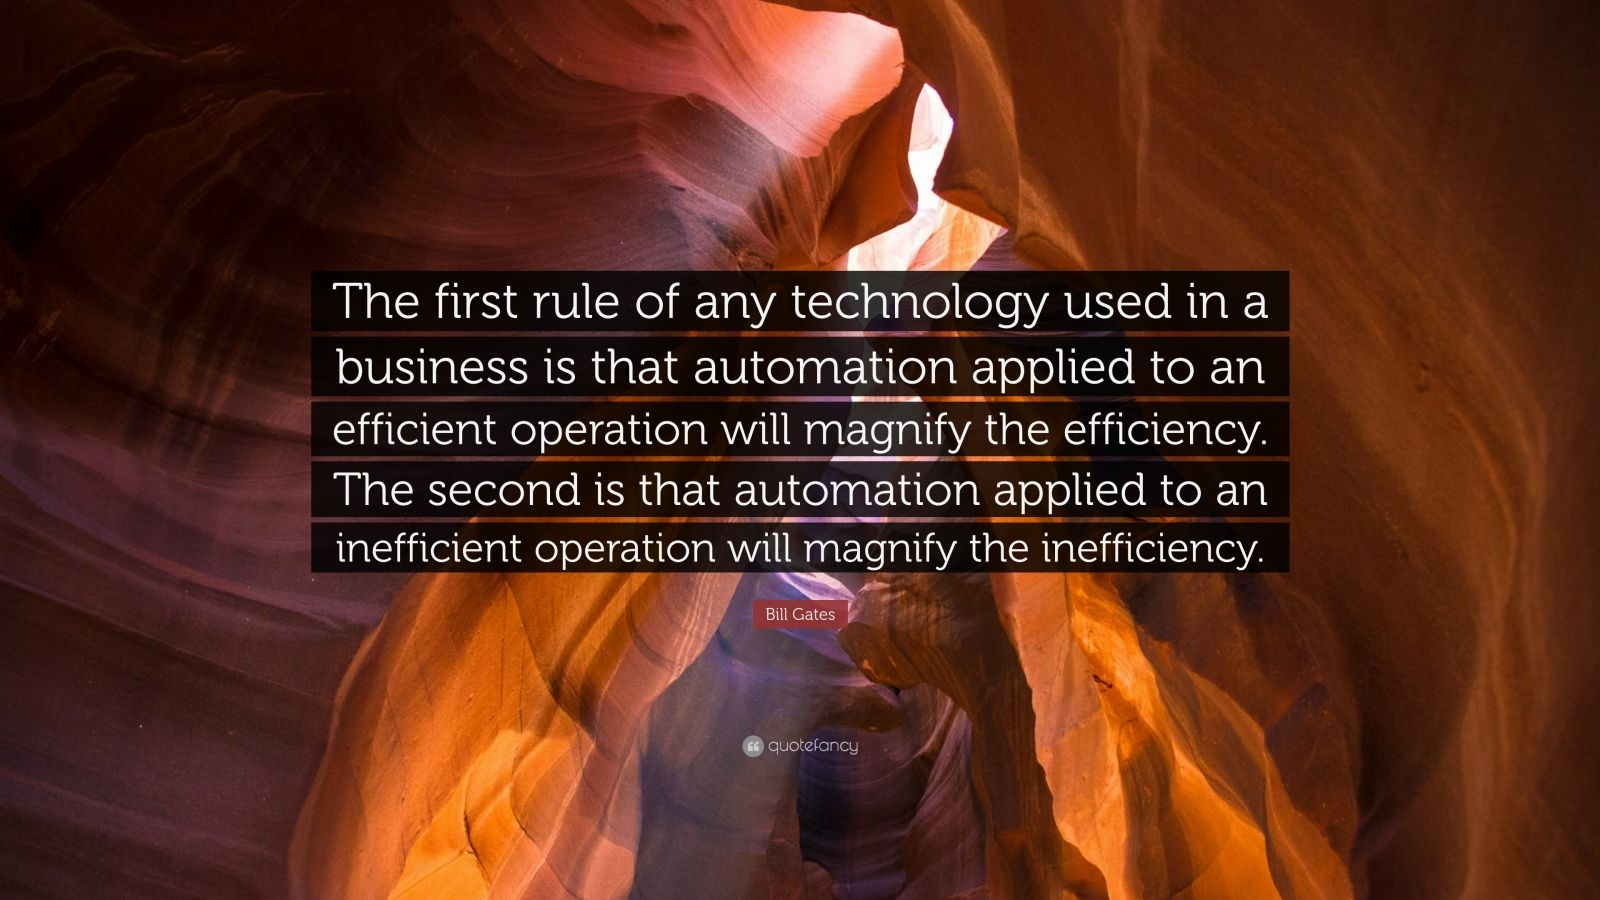 """Bill Gates Quote: """"The first rule of any technology used in a business is that automation applied to an efficient operation will magnify the efficiency. The second is that automation applied to an inefficient operation will magnify the inefficiency."""""""